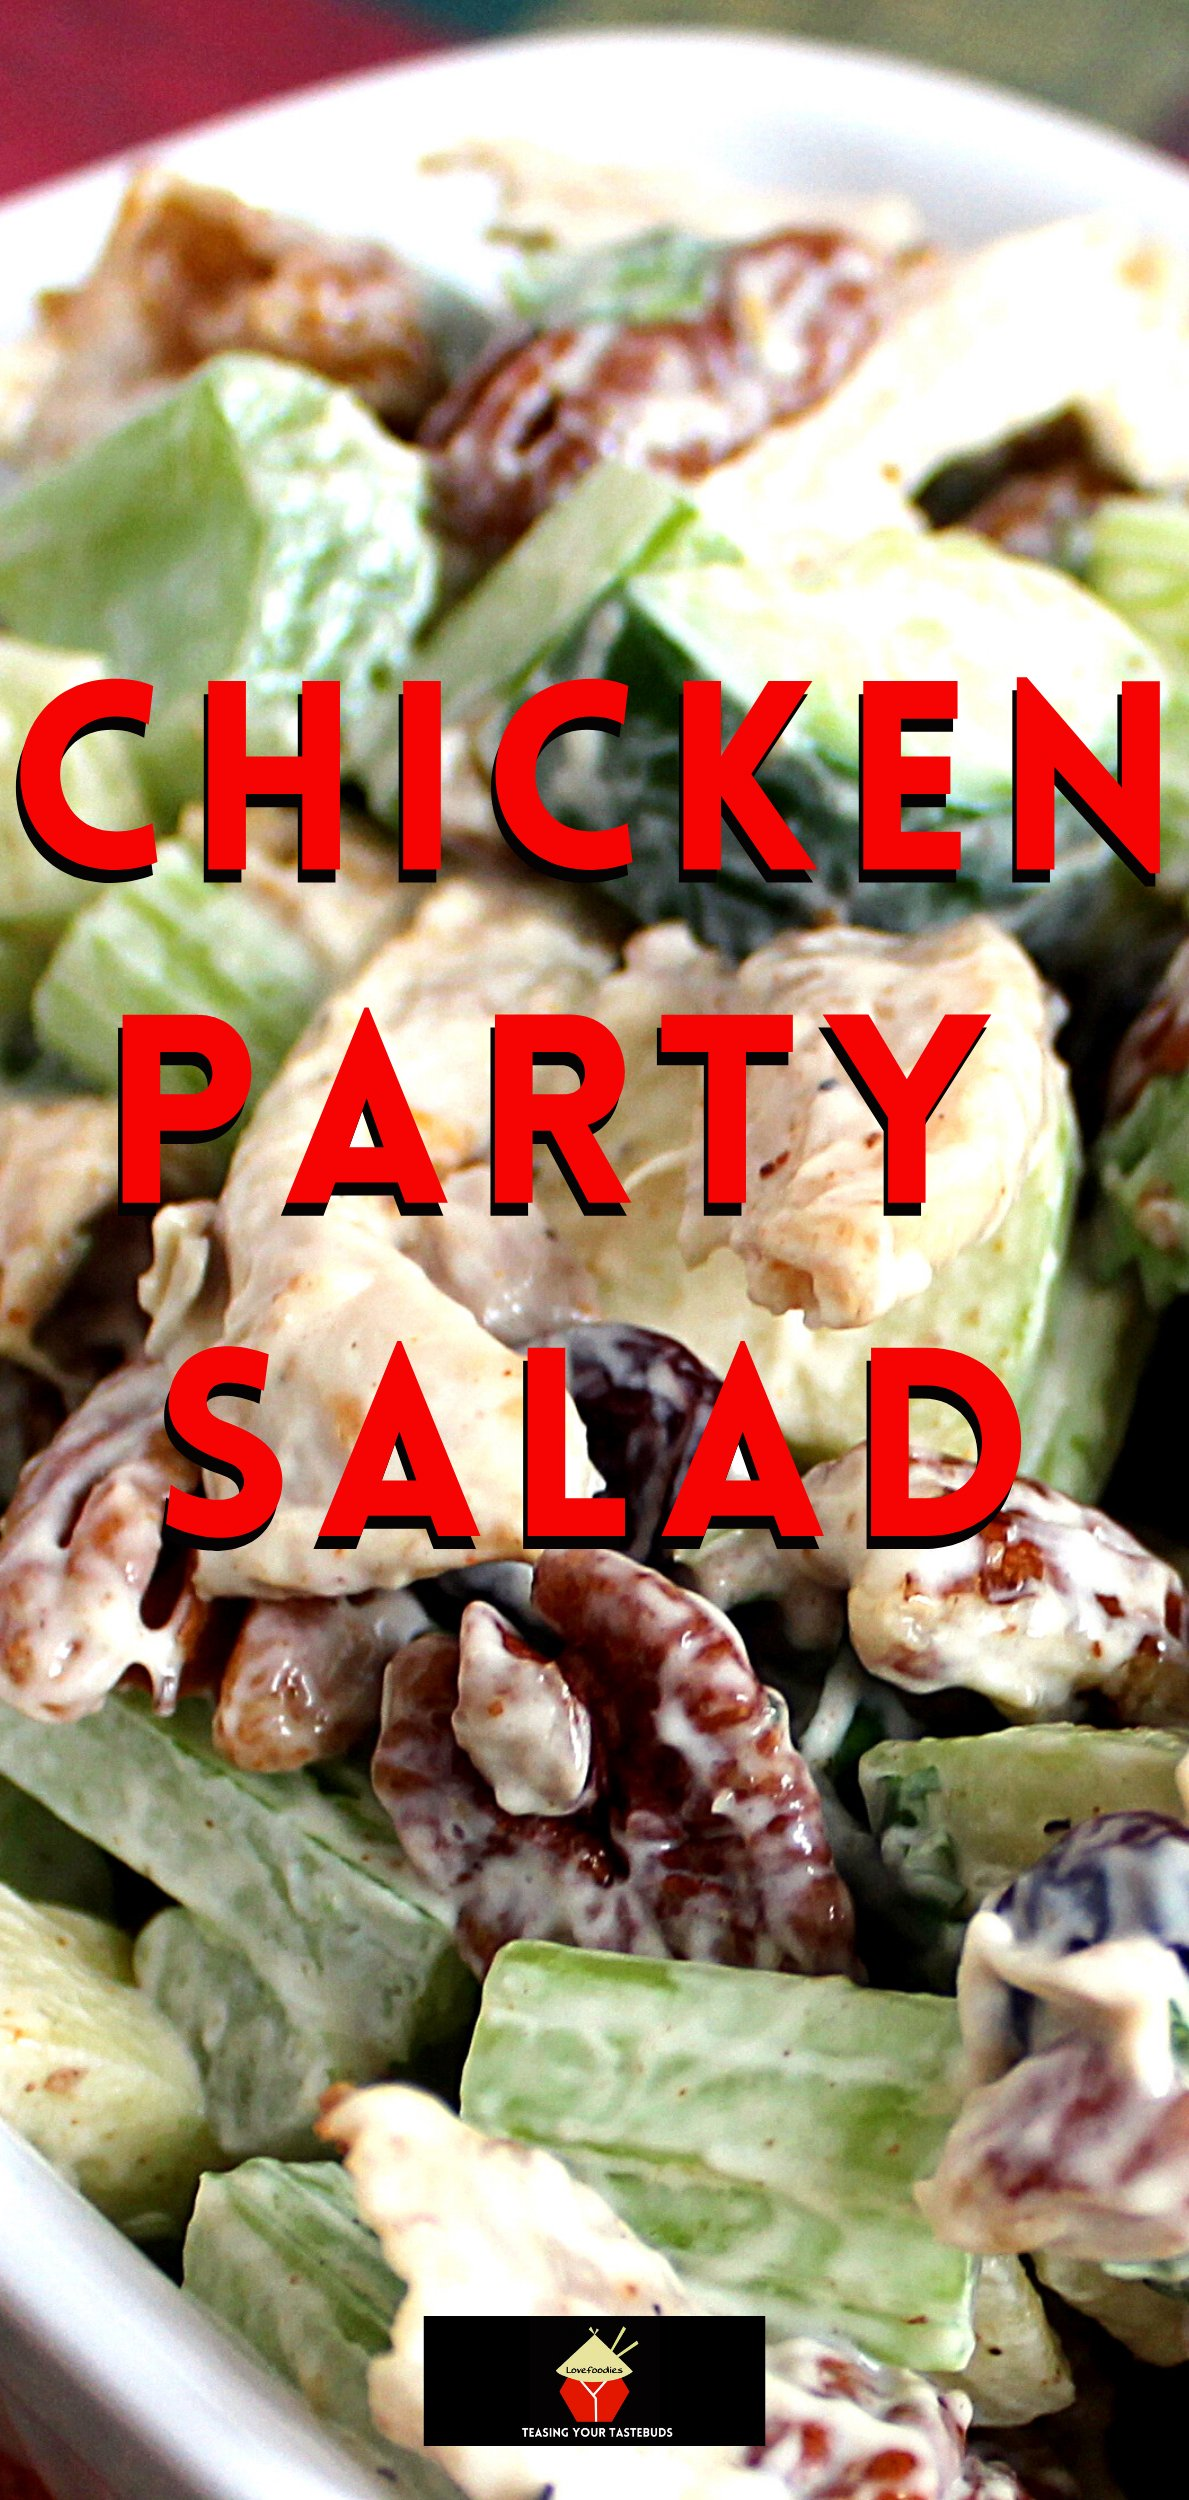 Chicken Party Salad. This is a great family recipe, quick & easy to make using leftover cooked chicken. Simple ingredients with lots of flavor. Perfect for parties, lunch or supper